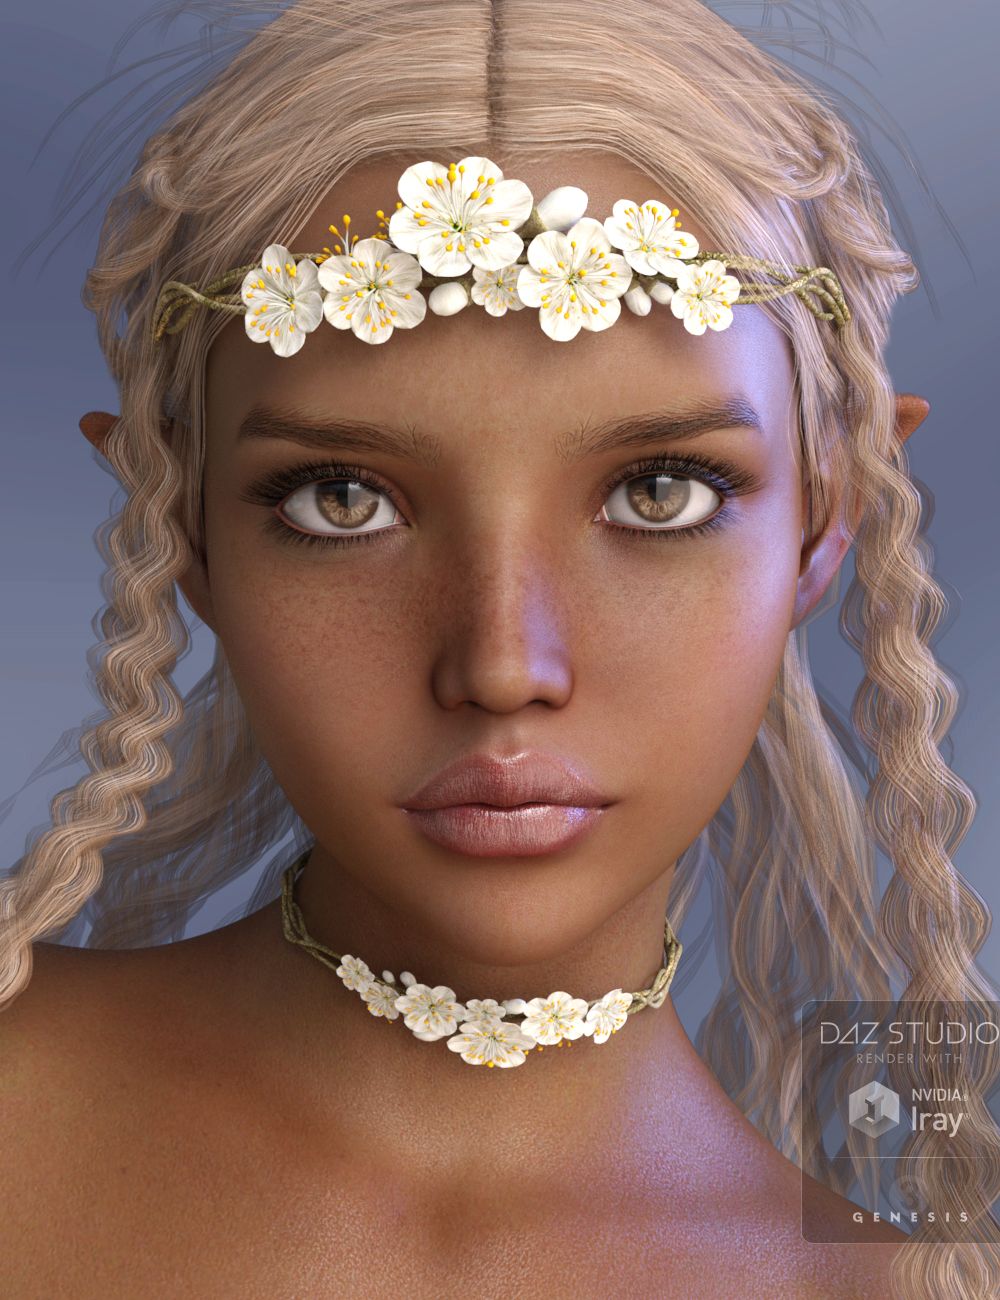 P3D Maria for Genesis 3 Female